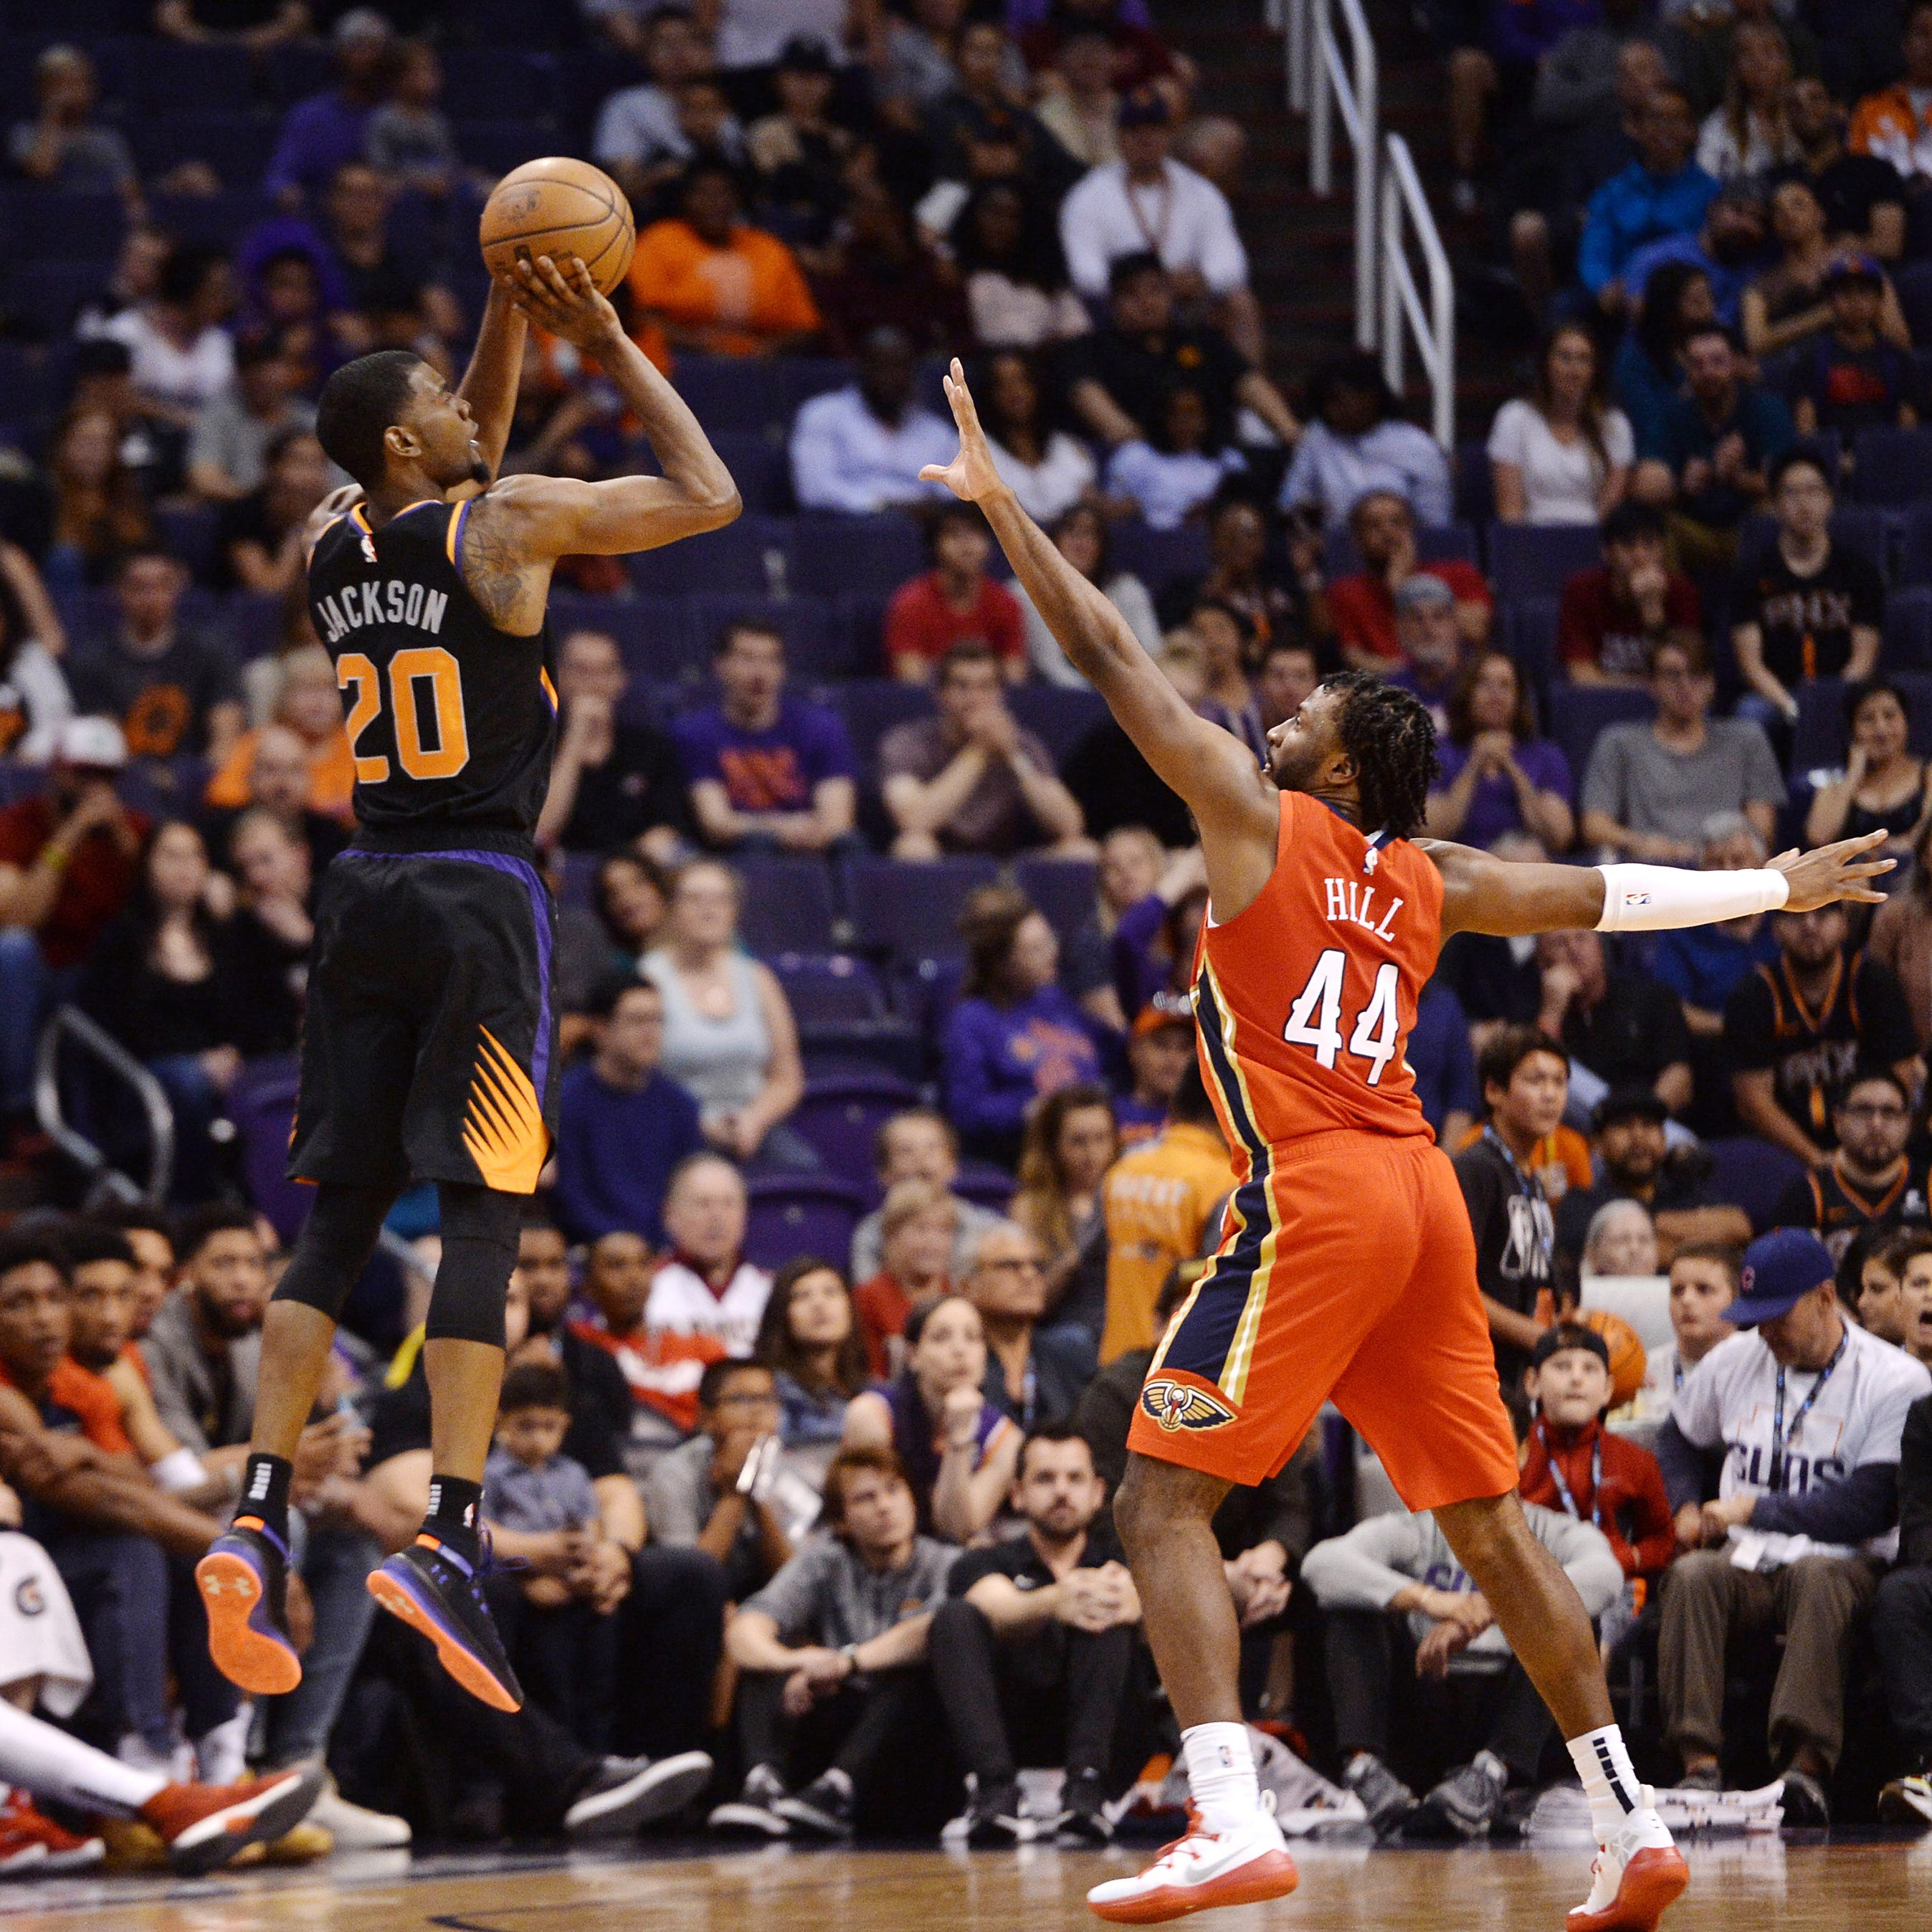 Suns' Josh Jackson once again shows star potential in 35-point performance vs. New Orleans